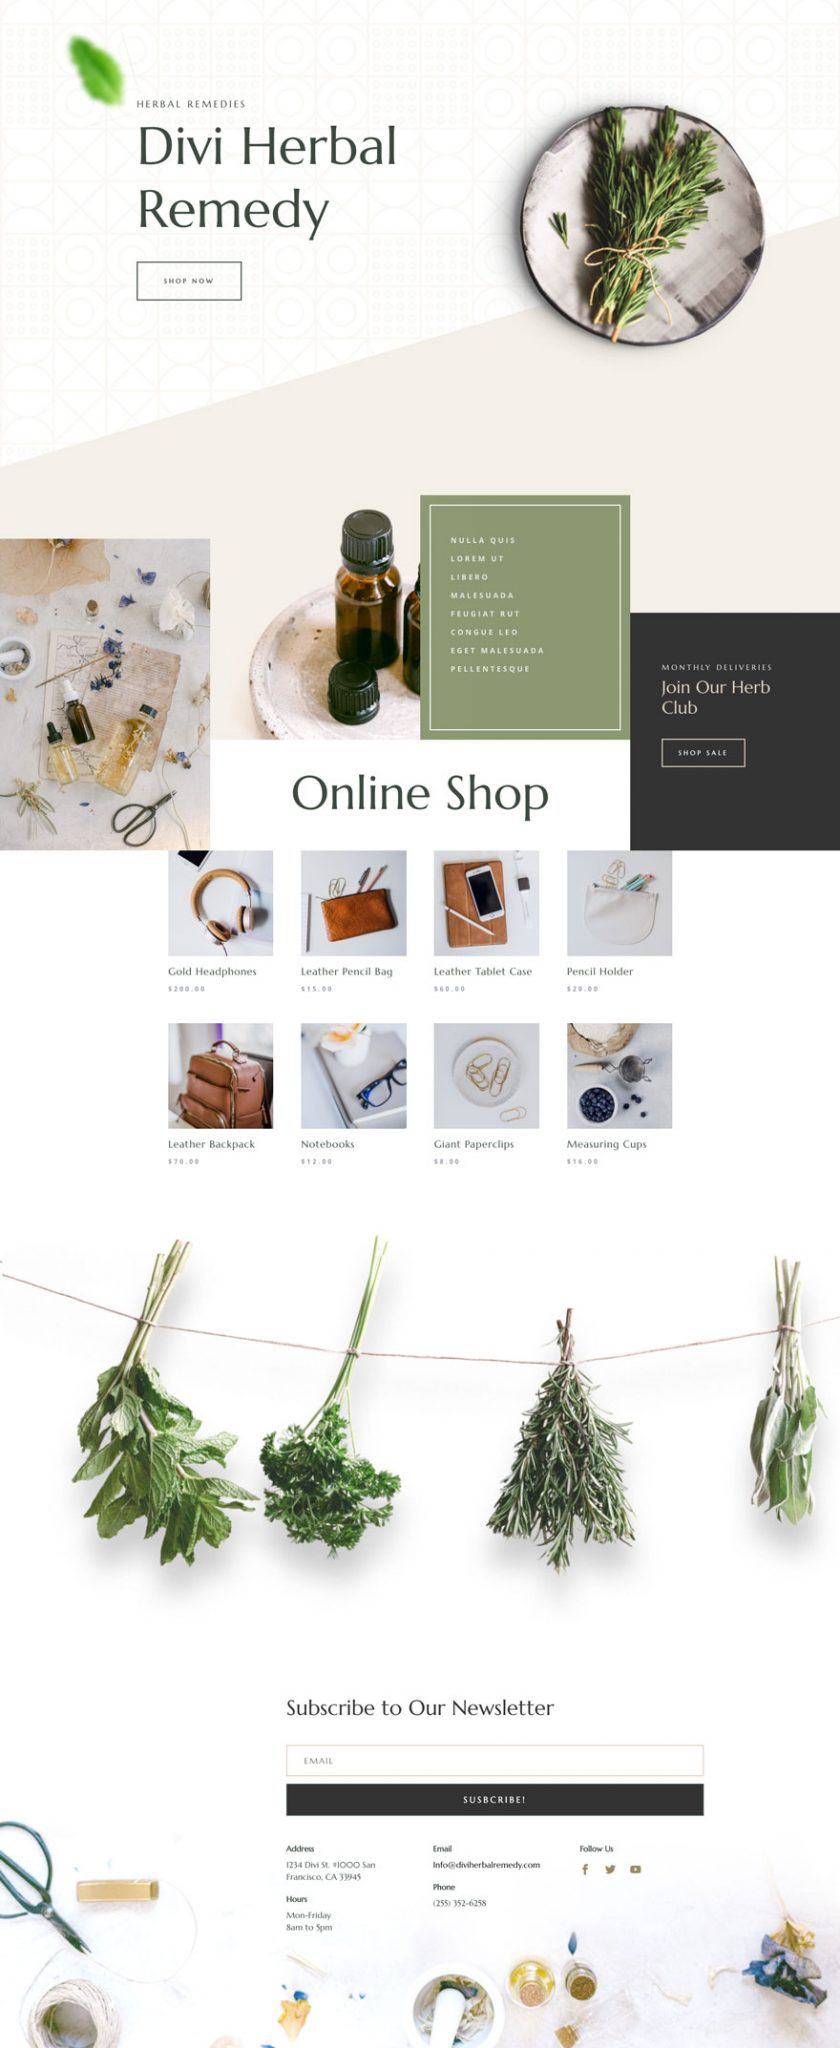 herbal remedy home page - Herbal Remedy Divi Layout By Elegant Themes